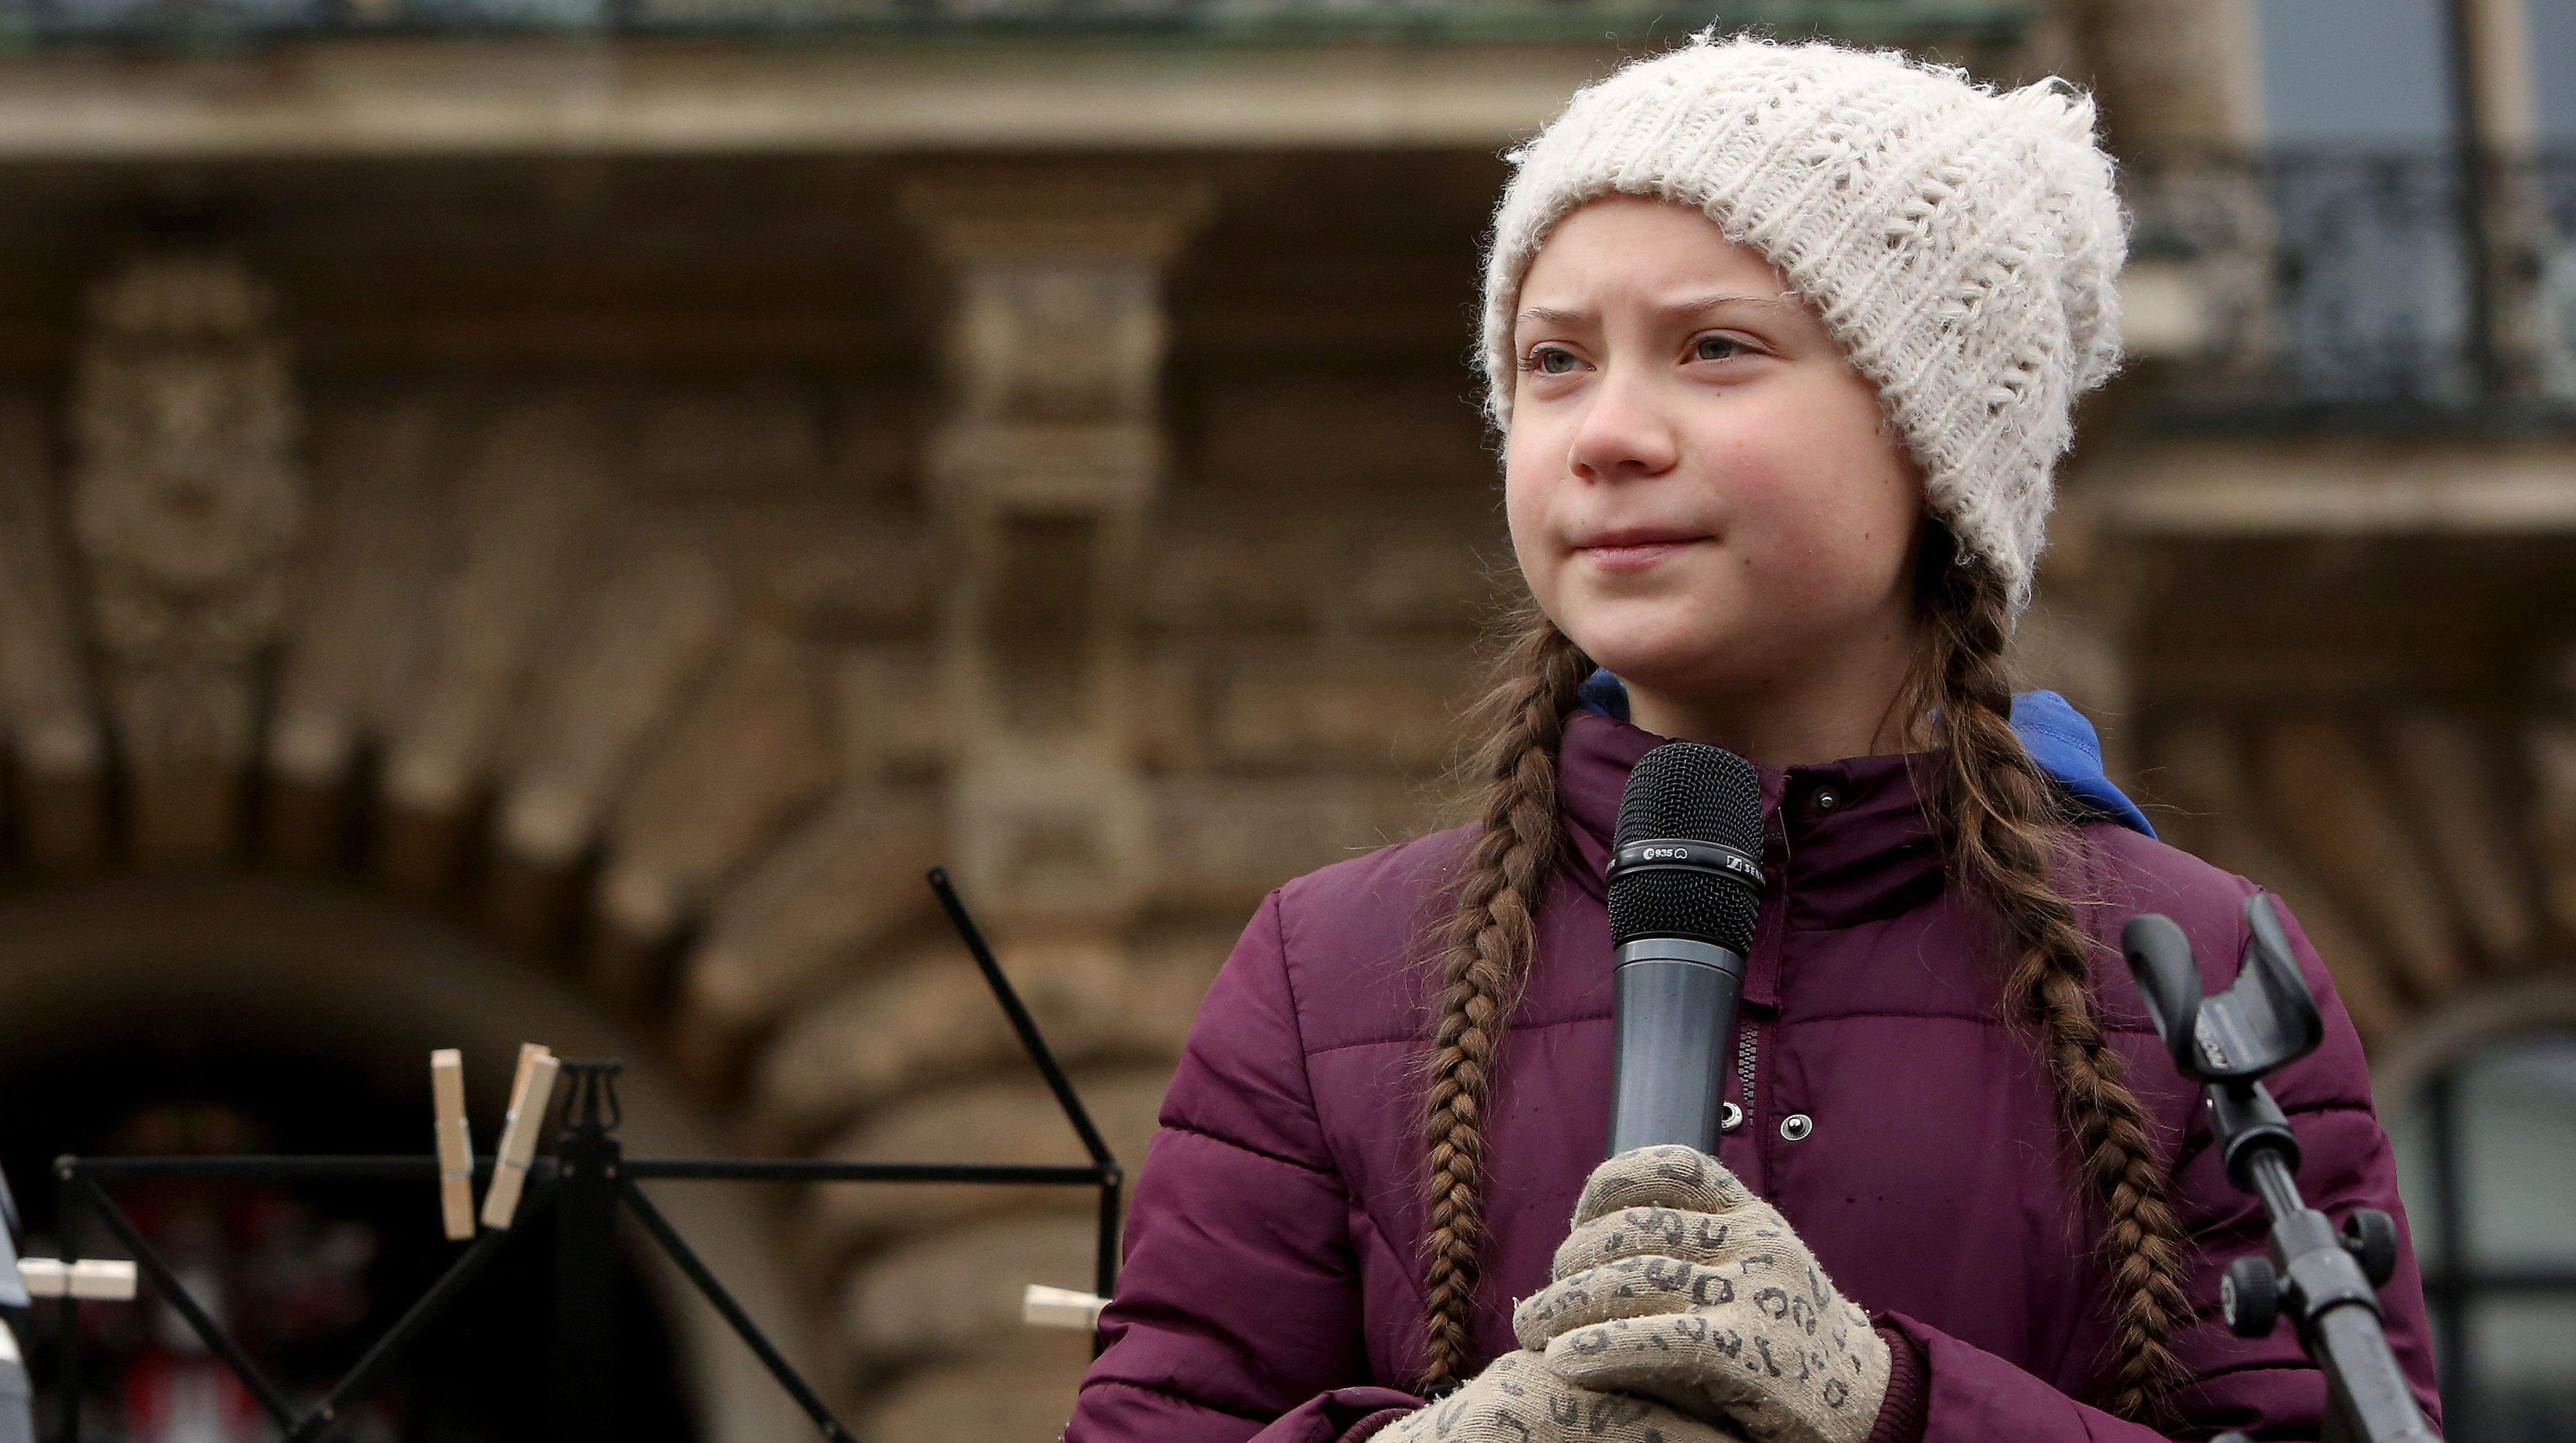 16-Year-Old Climate Activist Greta Thunberg Nominated For Nobel Peace